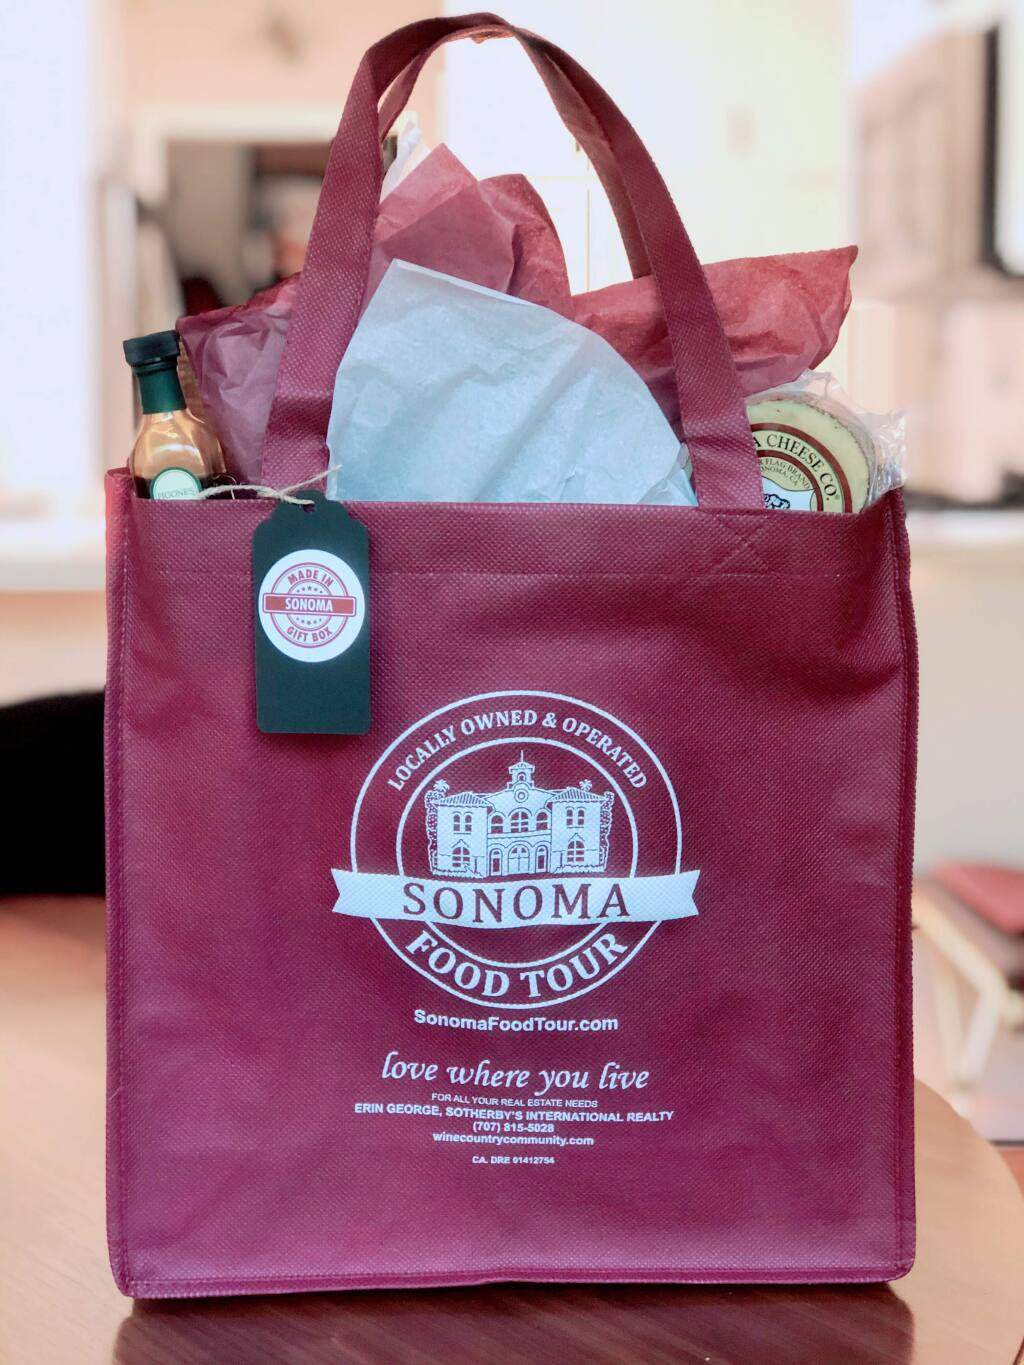 A Made-in-Sonoma gift bag.